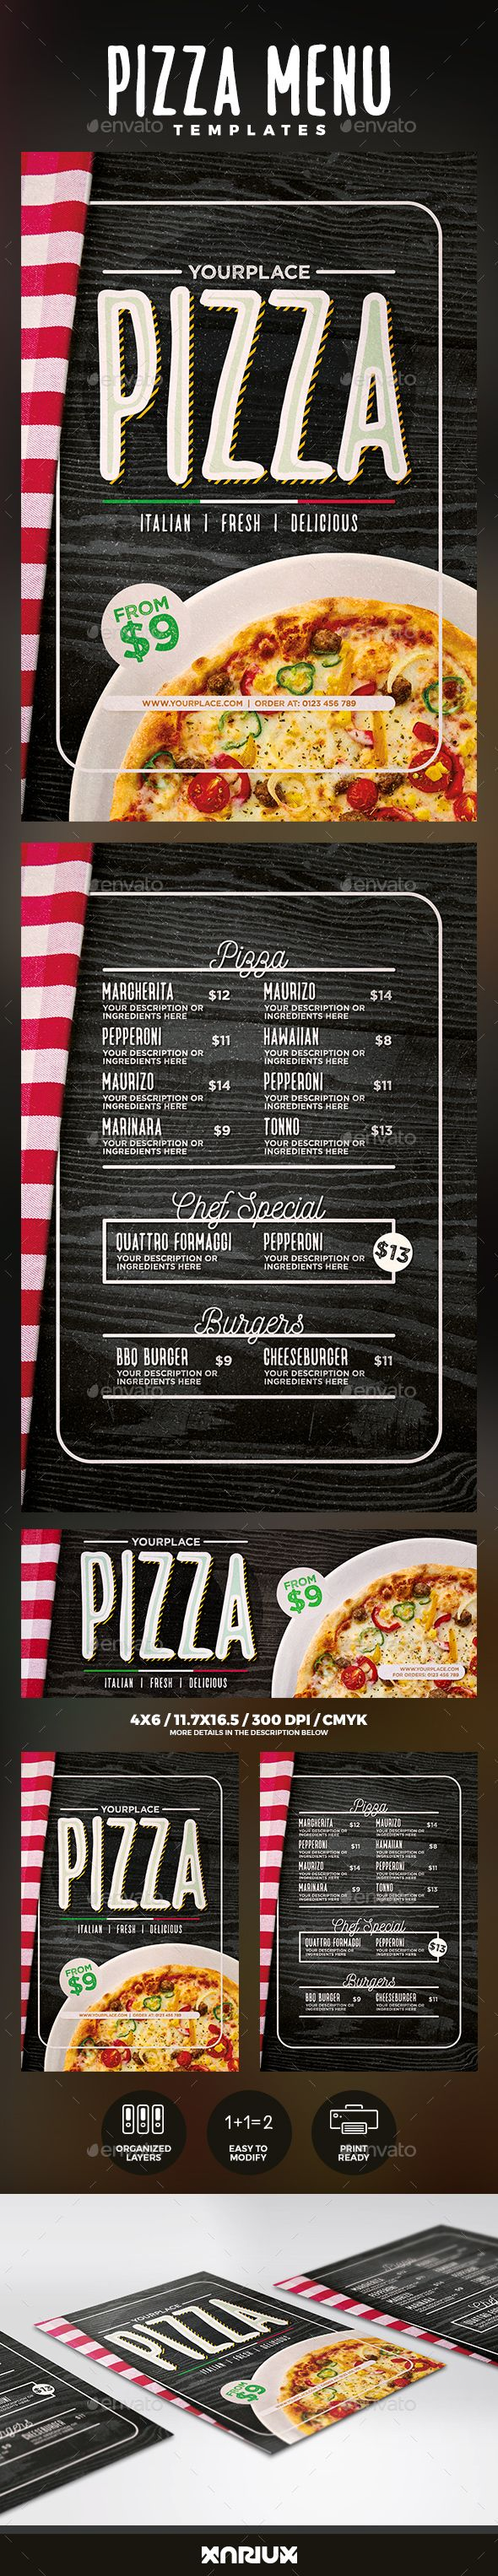 #Pizza #Menu Templates - #Food Menus Print Templates